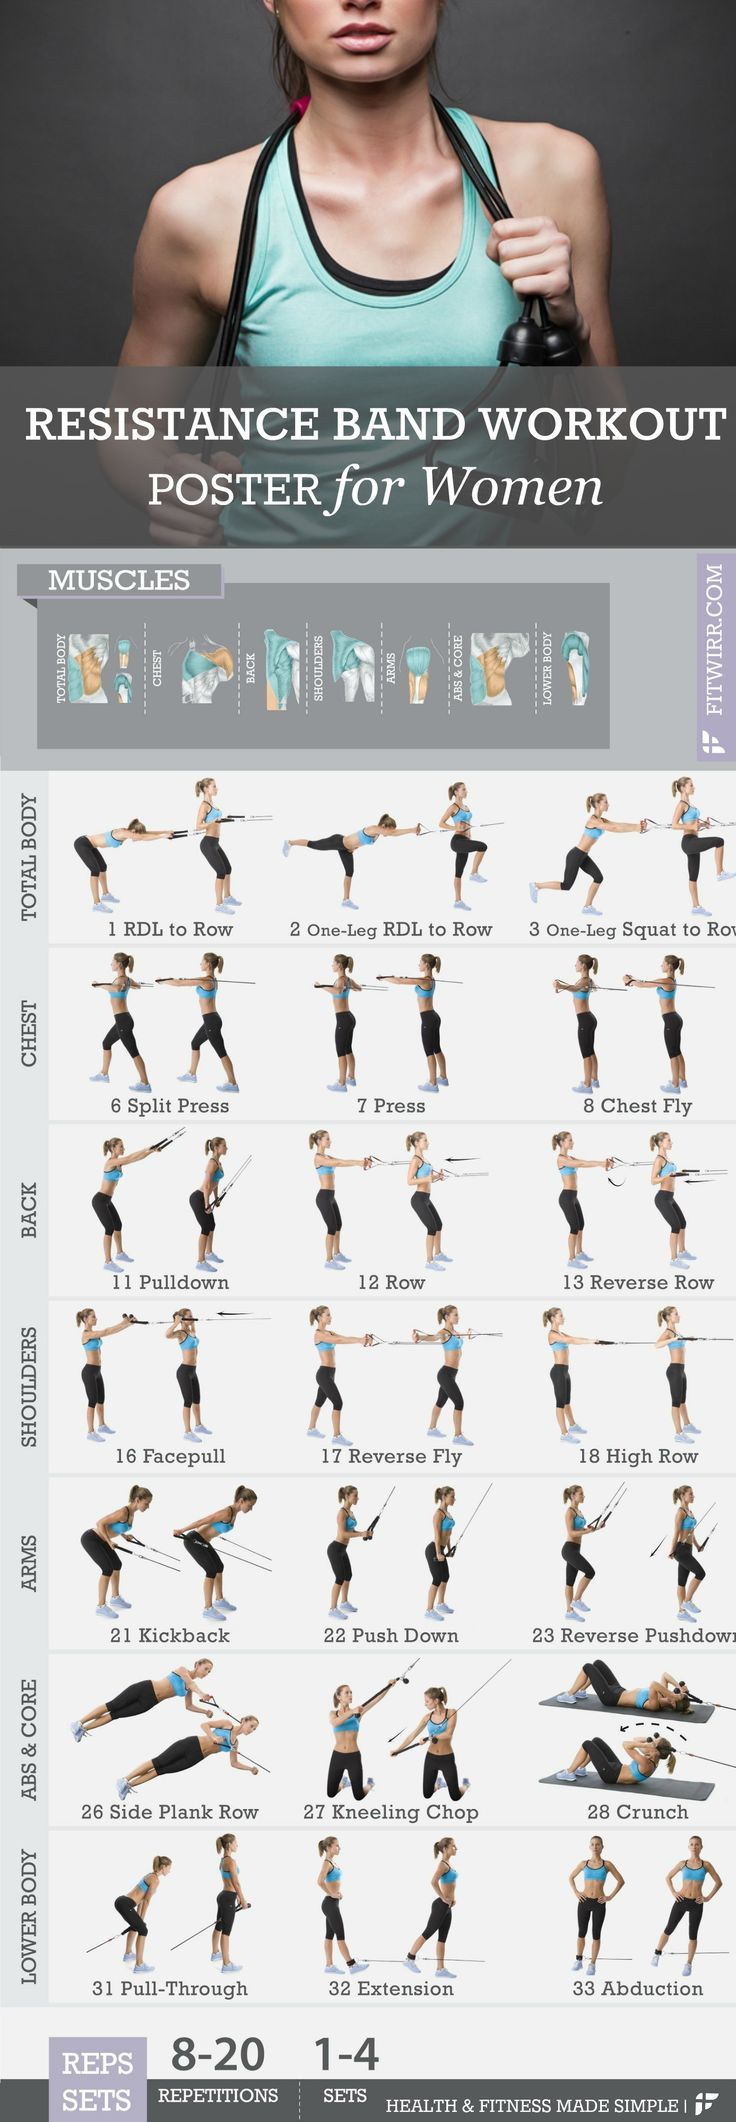 Exercise bands, also called resistance bands or working bands are one of the best exercise tools to gain flexibility and strength, and tone up your whole body. Exercise bands are easier to control the